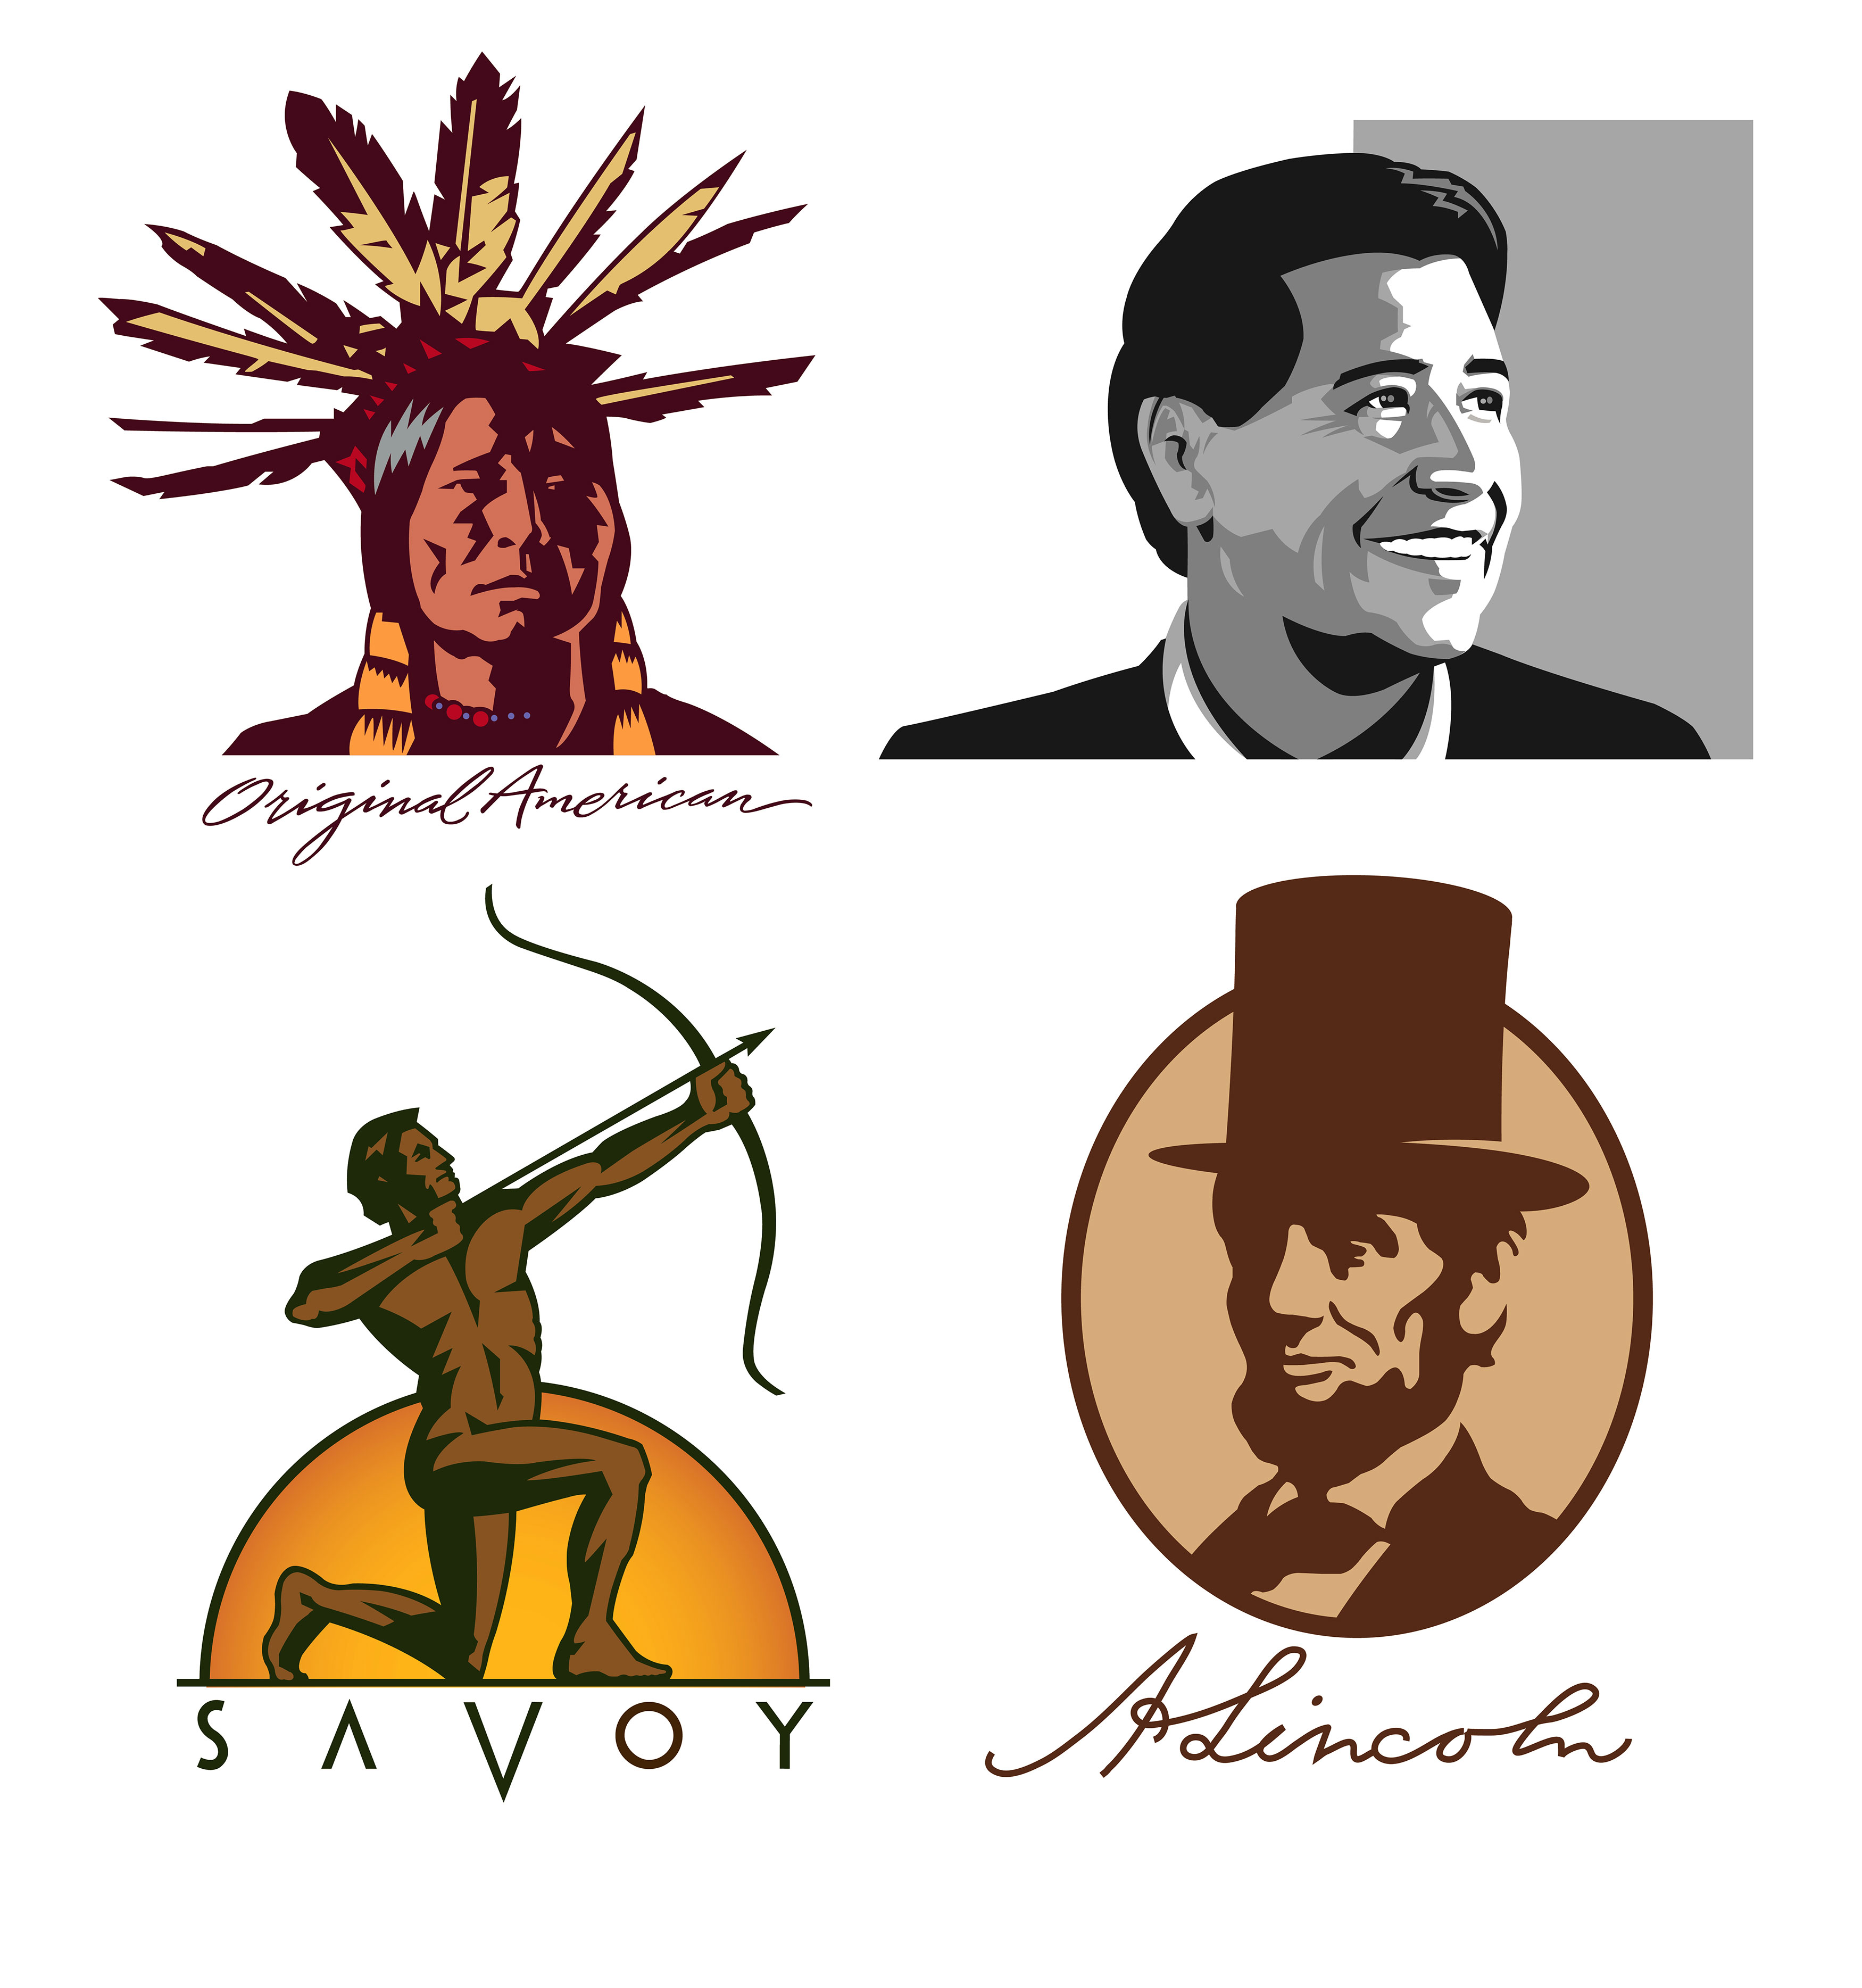 Kelly Hume Illustration Lincoln Native American Savoy